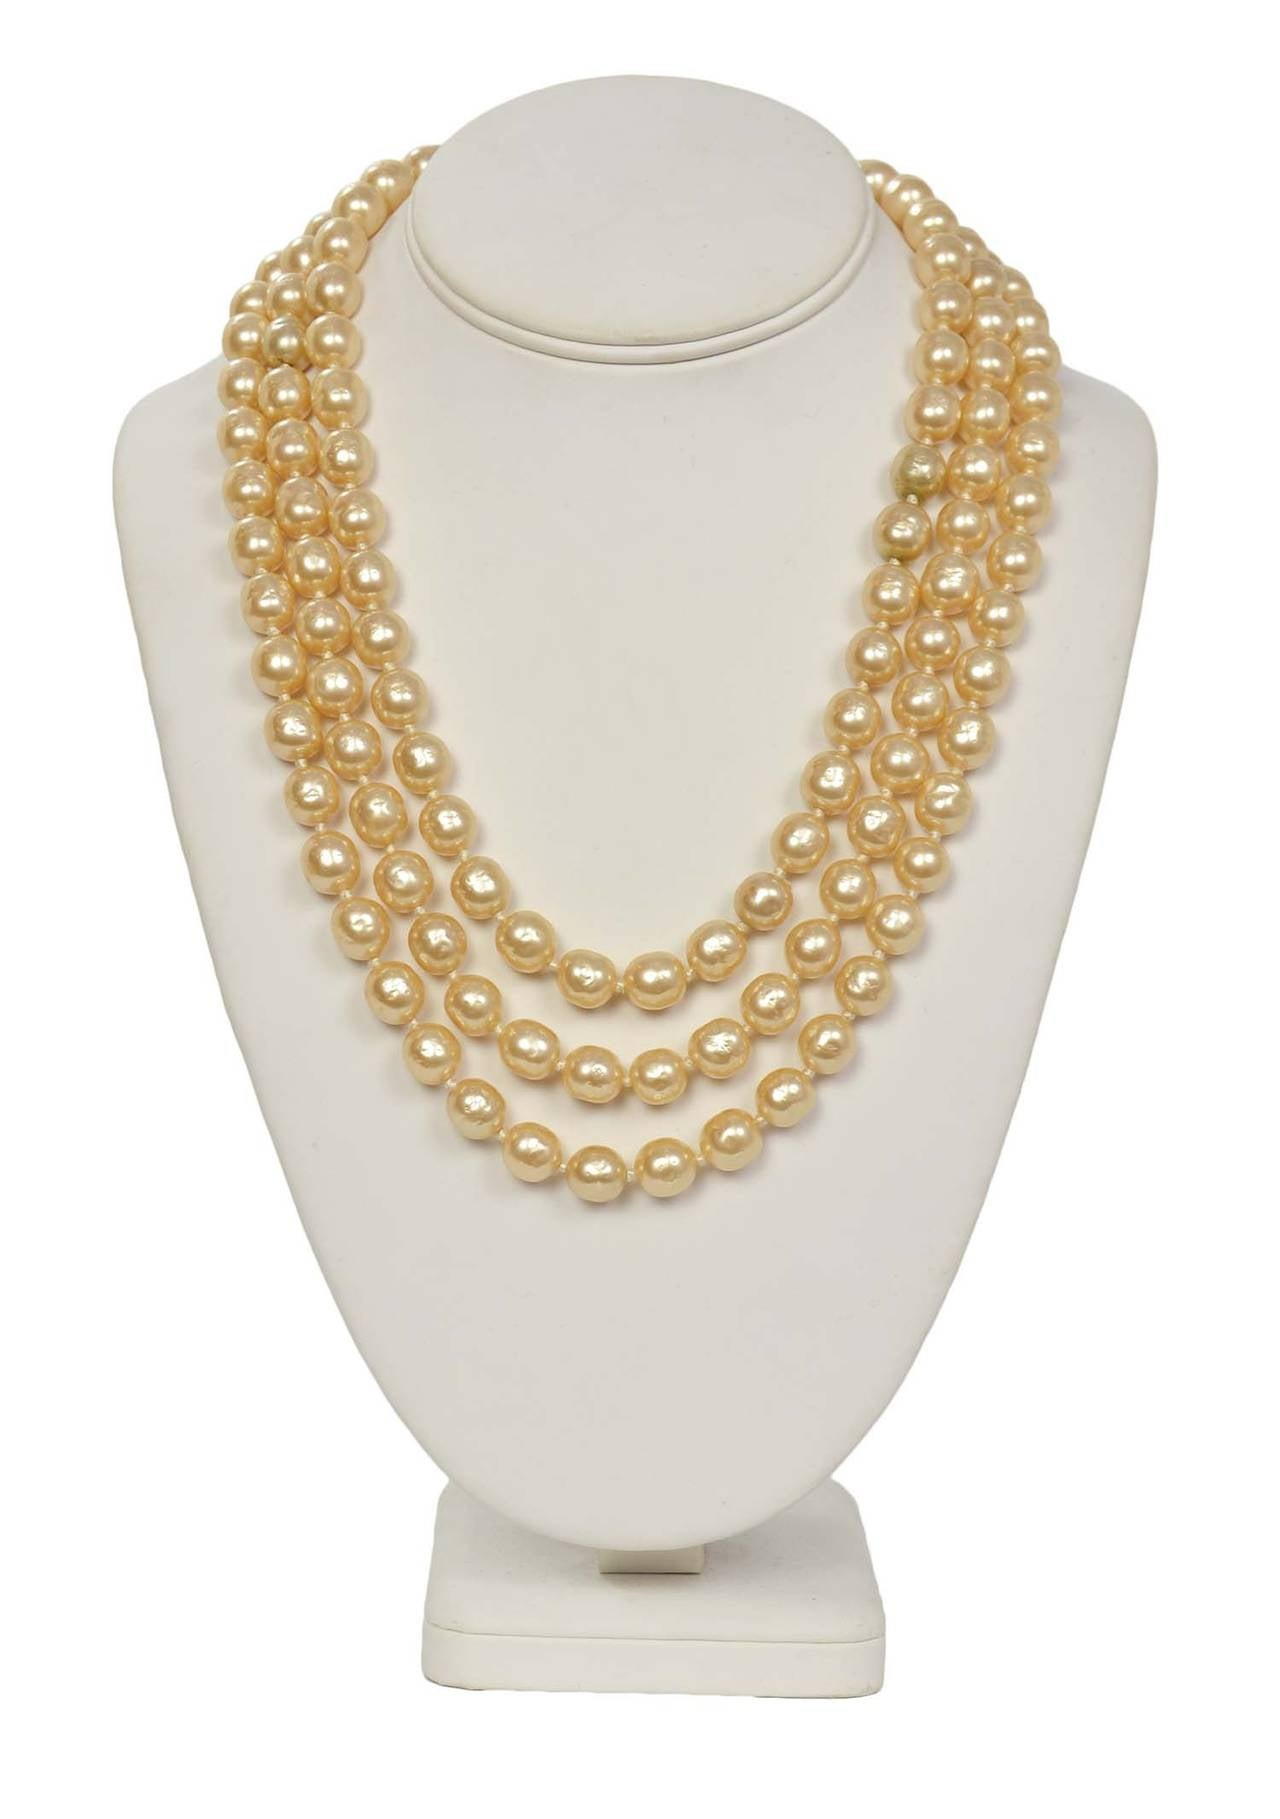 CHANEL Vintage 1950's-1960's Three Strand Pearl Necklace w/Antique Clasp 2